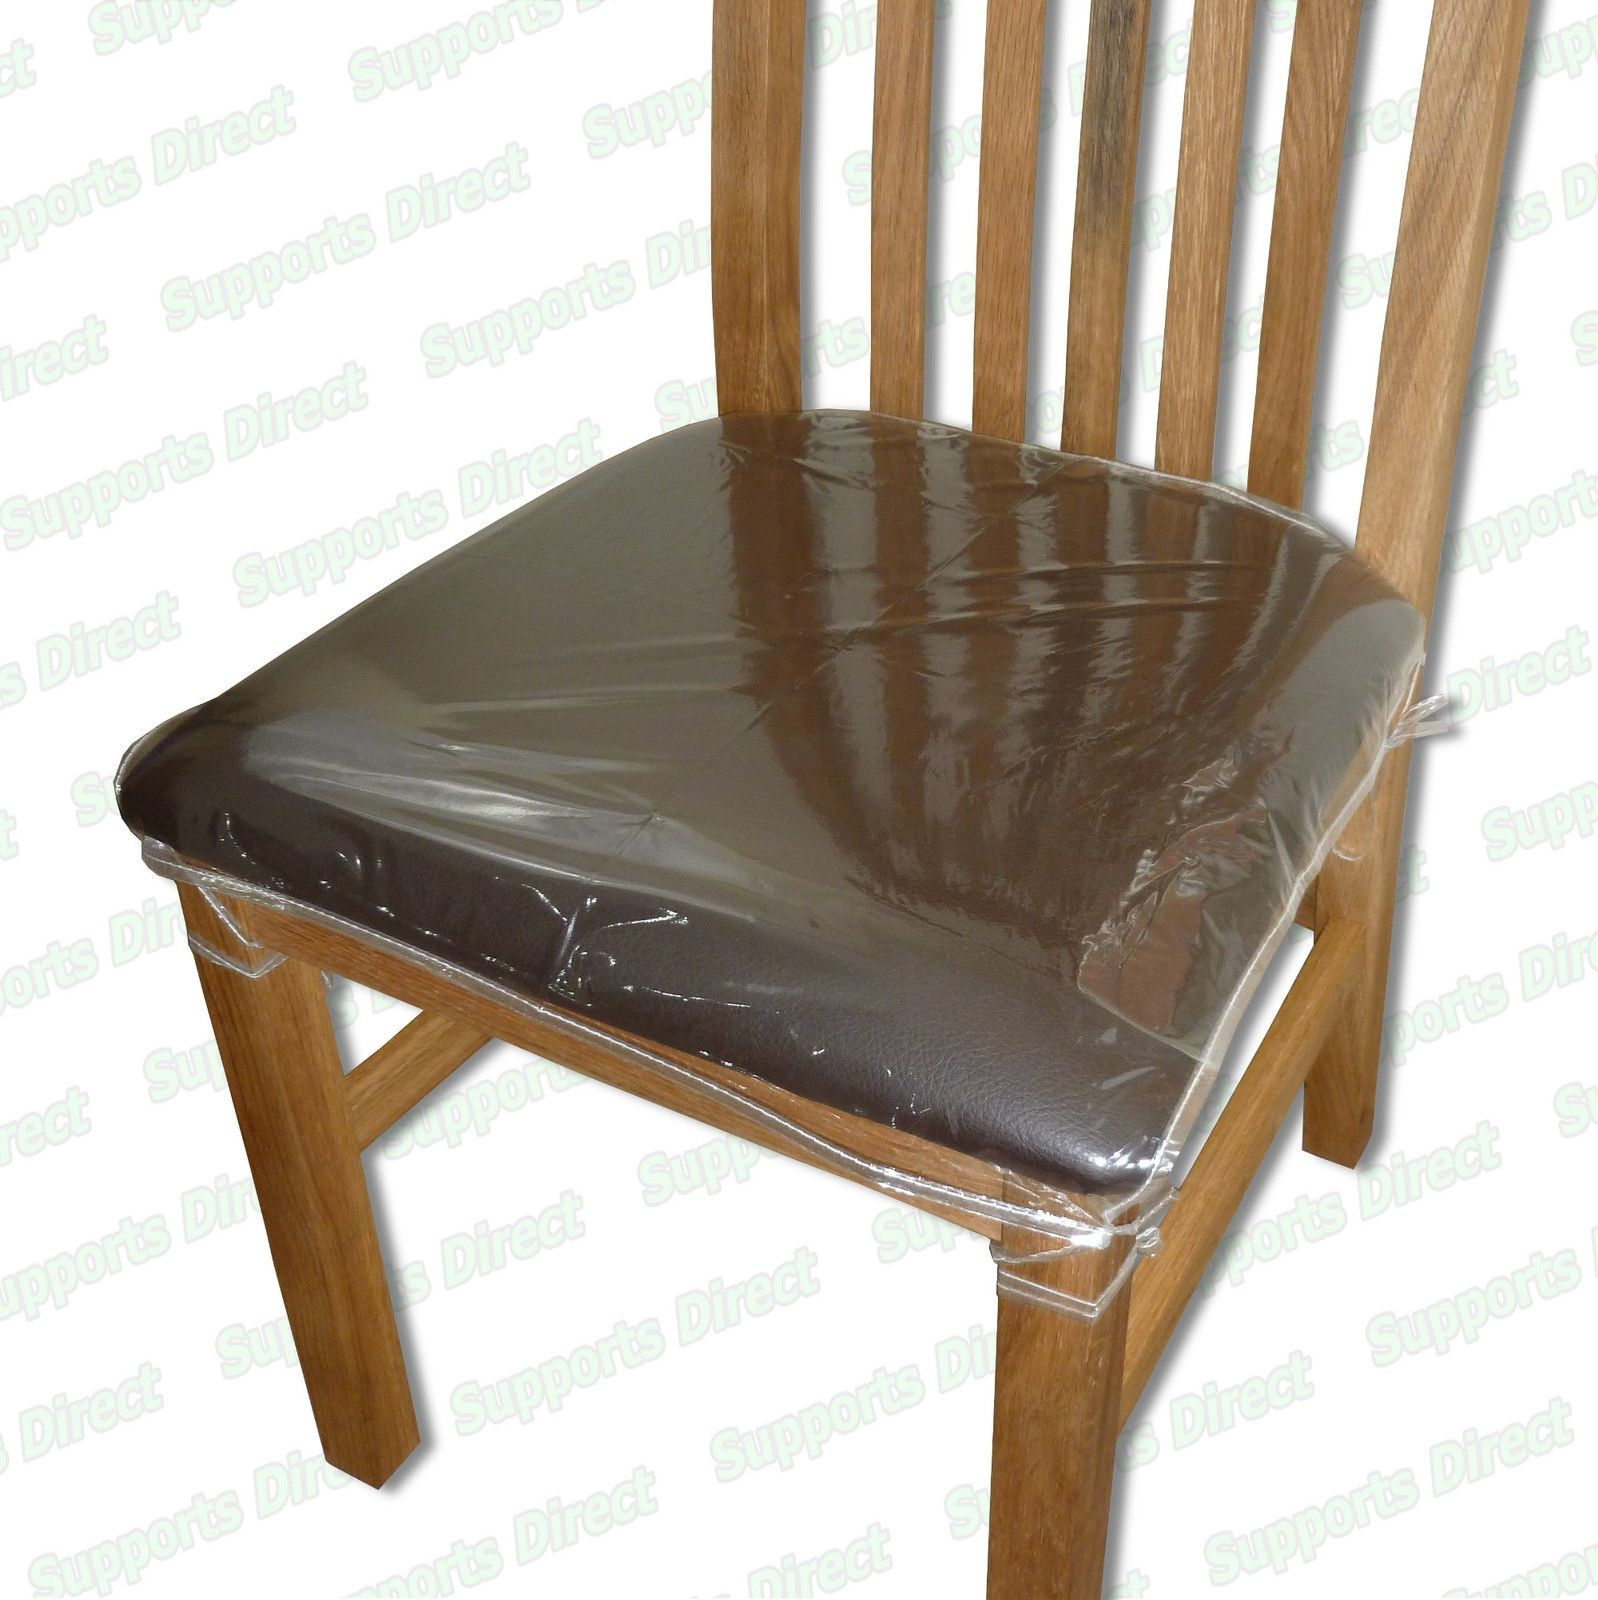 Plastic Seat Cover For Dining Chairs | http://images11.com ...